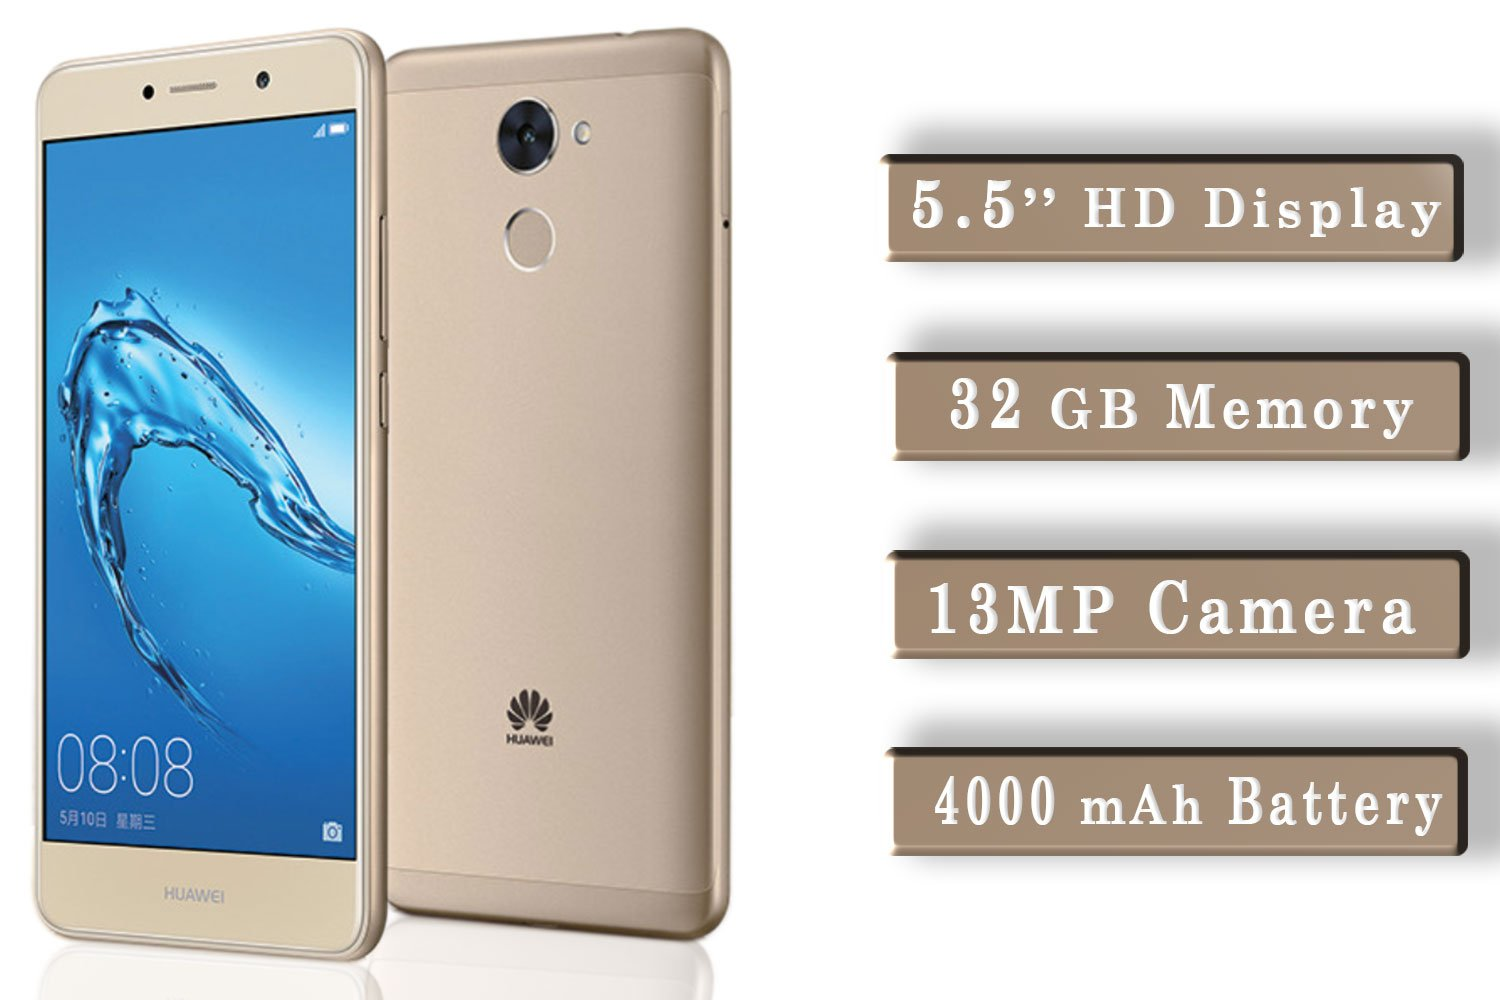 huawei y7 prime specifications , y7 prime